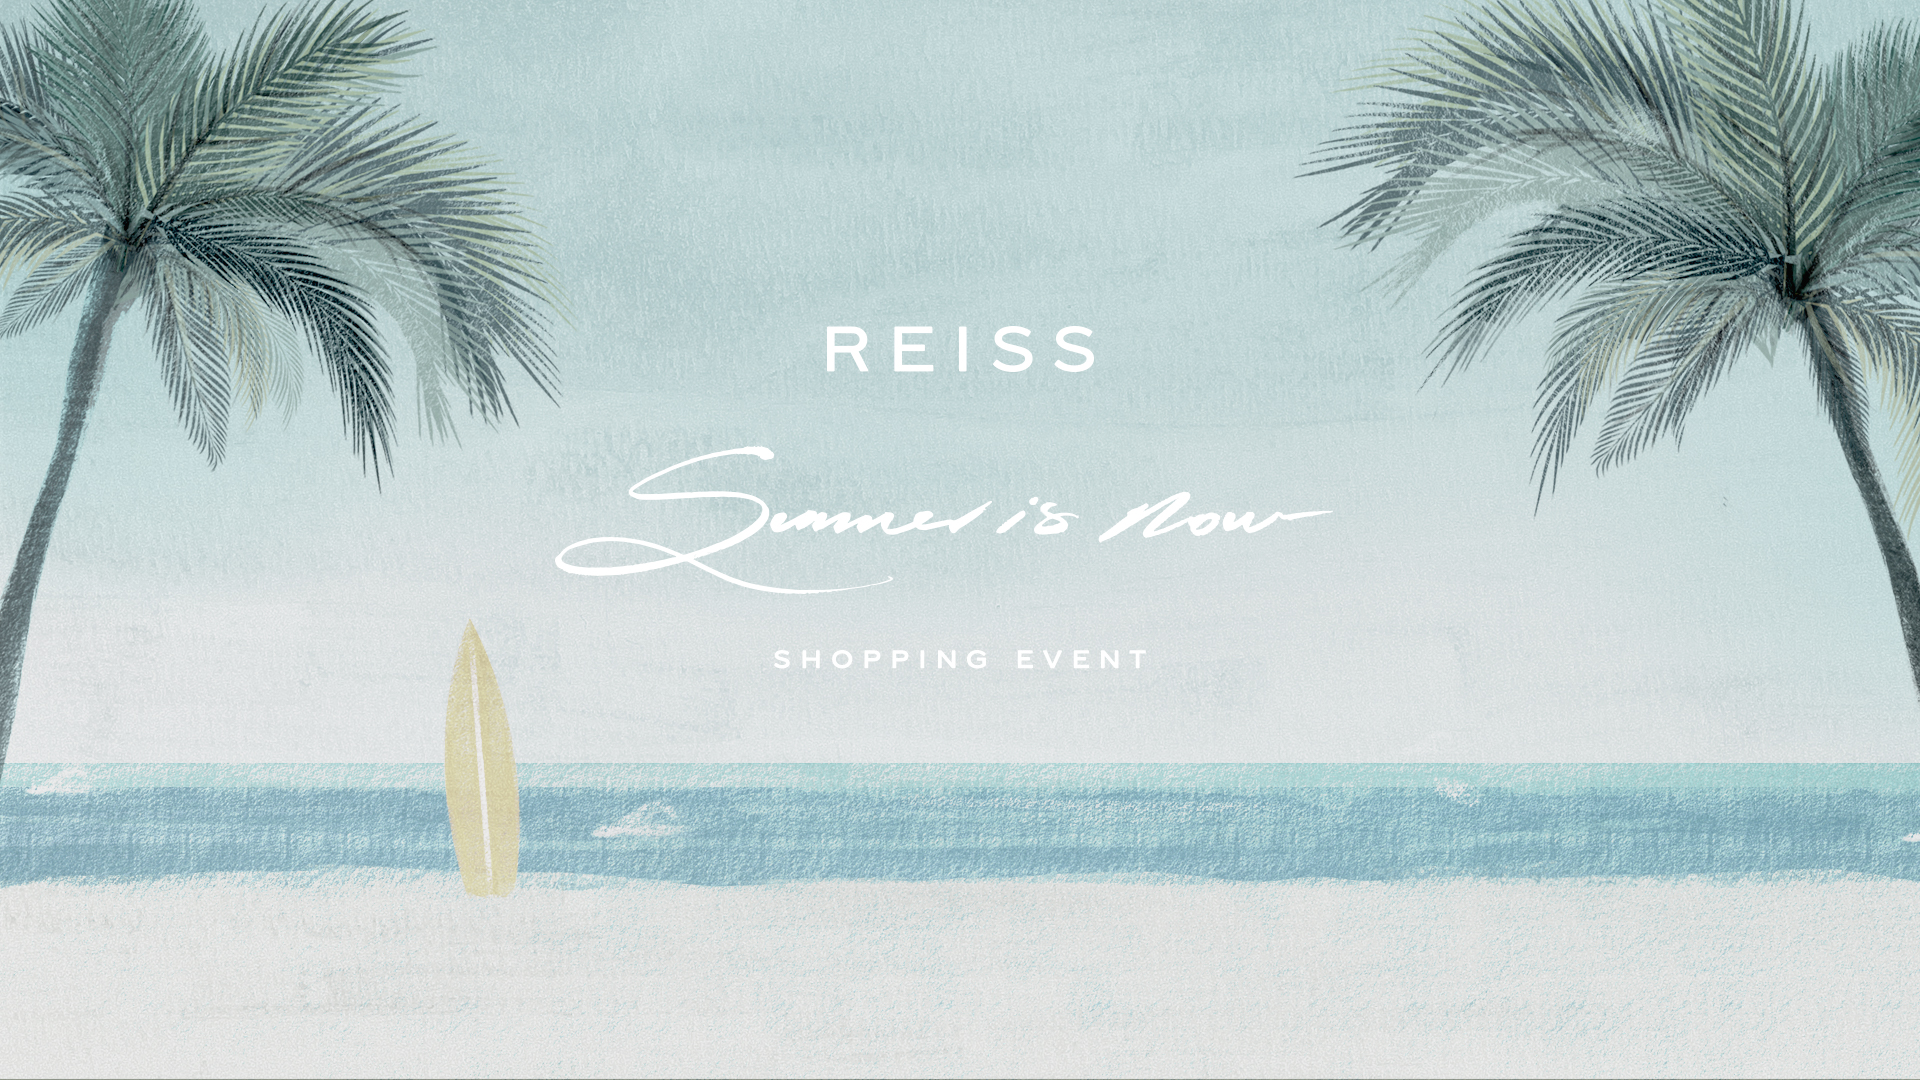 REISS Shopping event – Summer is Now